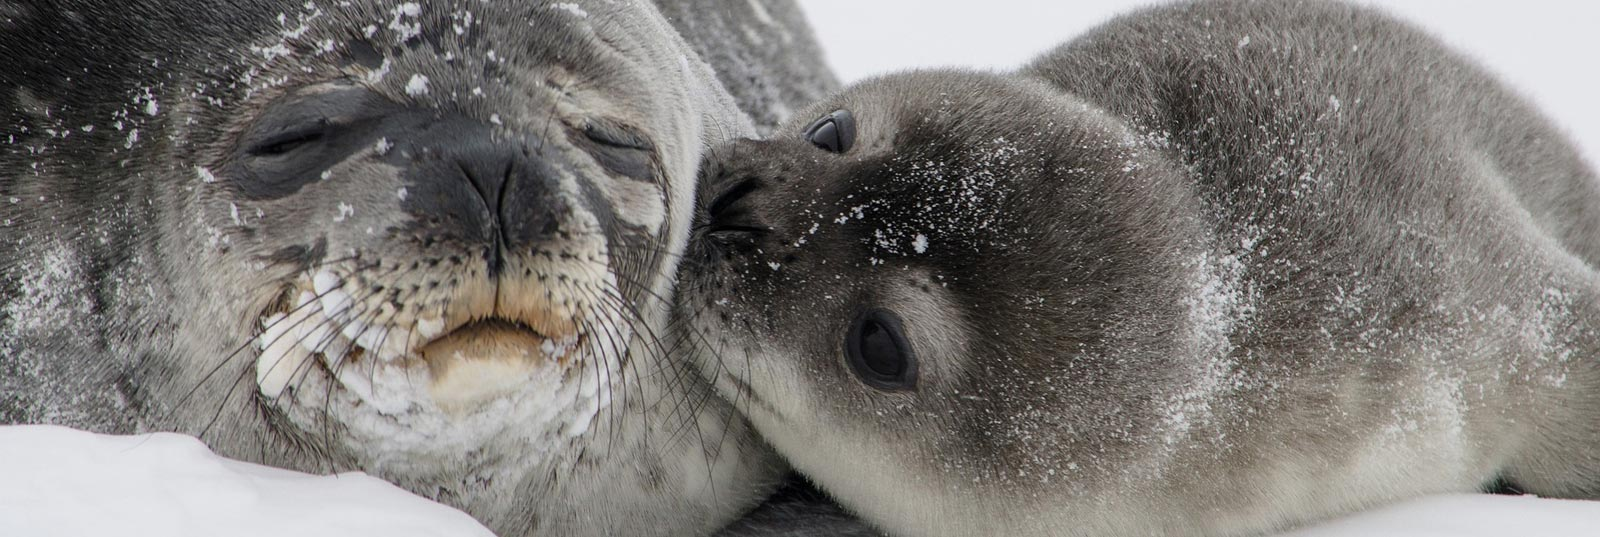 seal hunt debate A bit of nonsense from all sides of the great seal hunt debate april 25 the seal hunt is a stain on newfoundland.